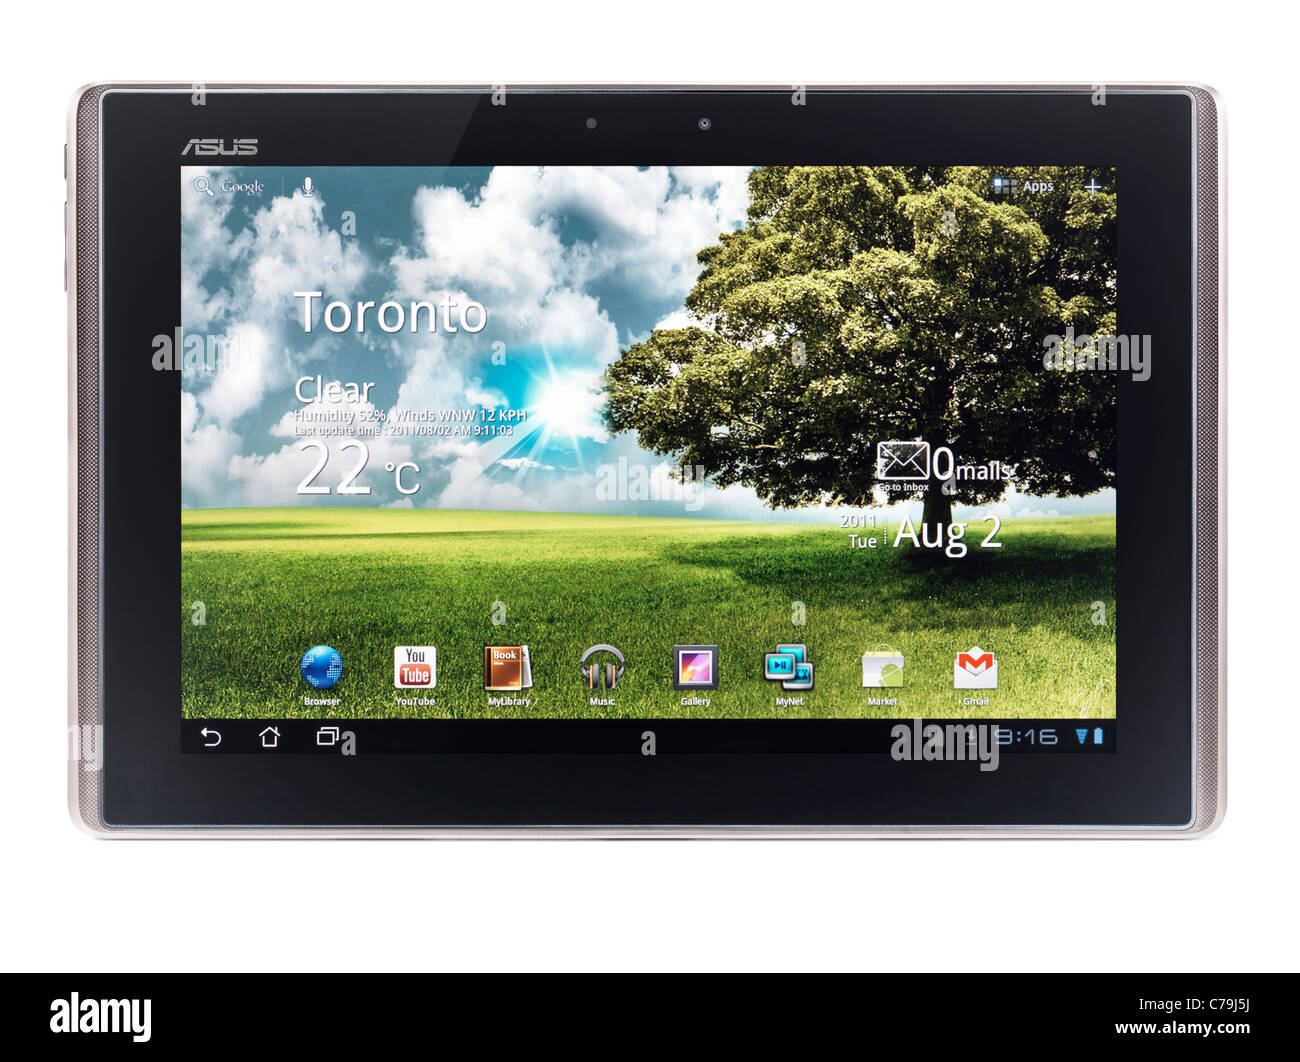 ASUS Eee Pad Transformer TF101 Android Tablet ordinateur isolé sur fond blanc avec clipping path Photo Stock